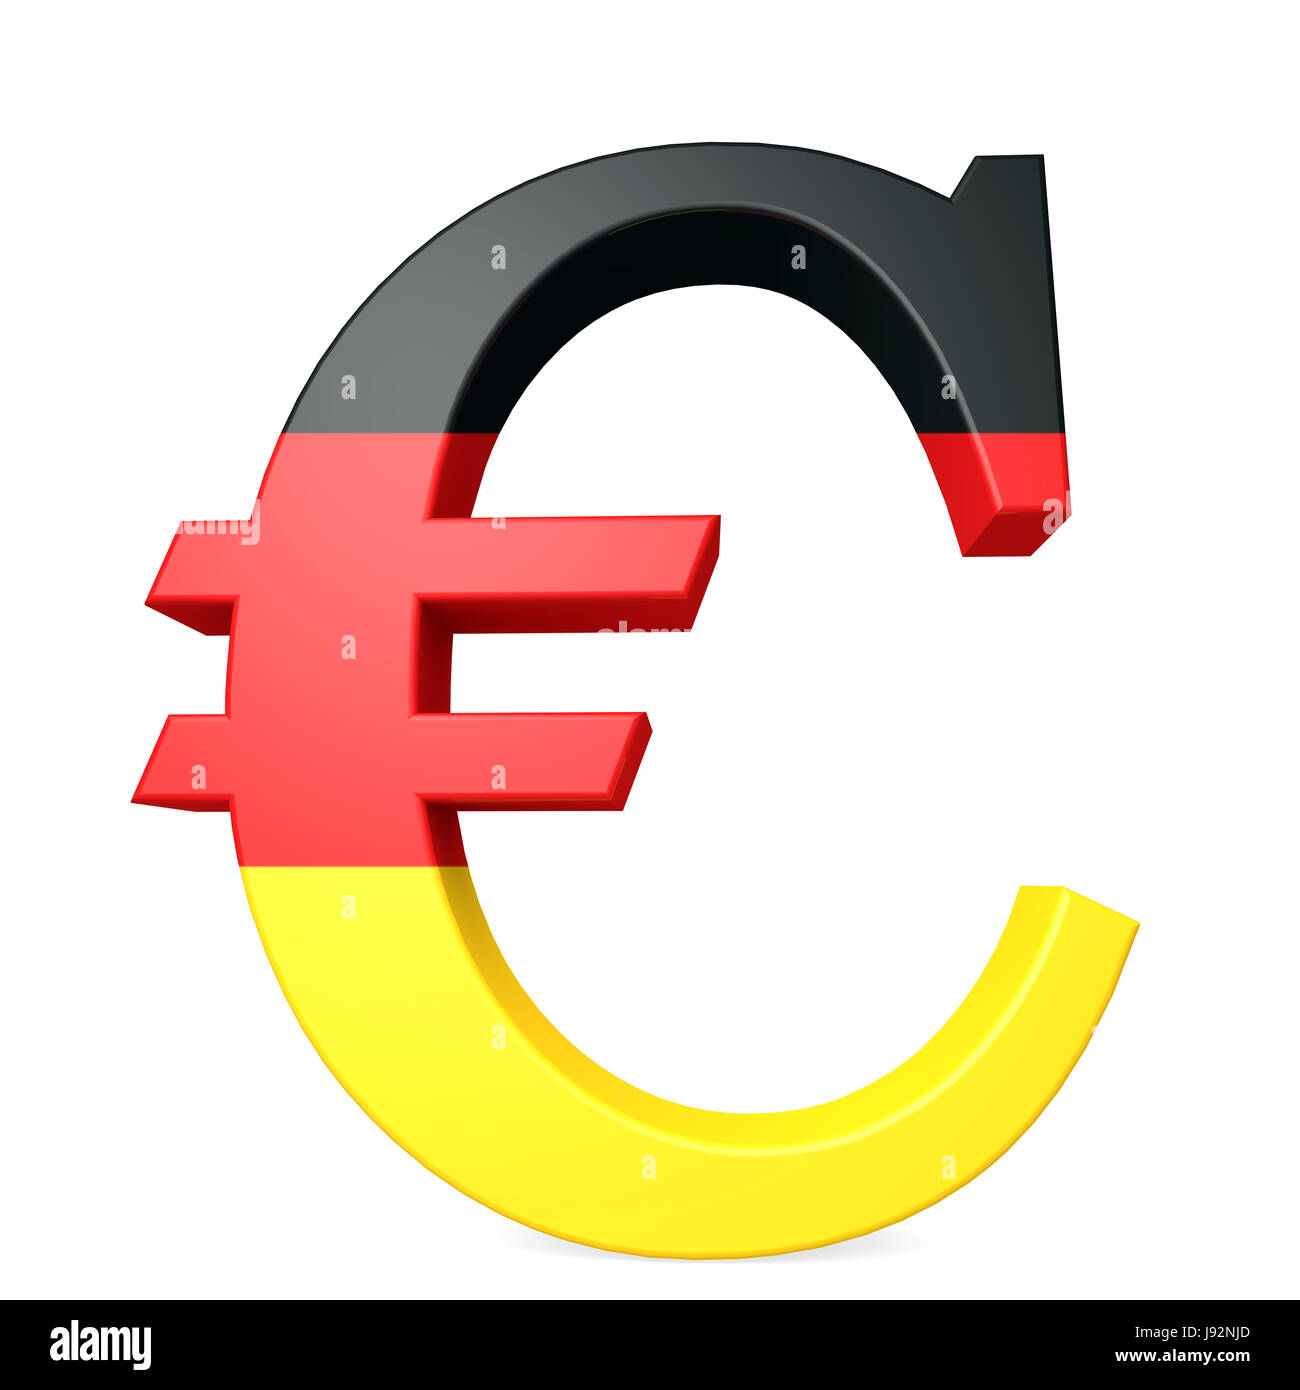 bank, lending institution, euro, currency, europe, tax, money, finances, bank, Stock Photo